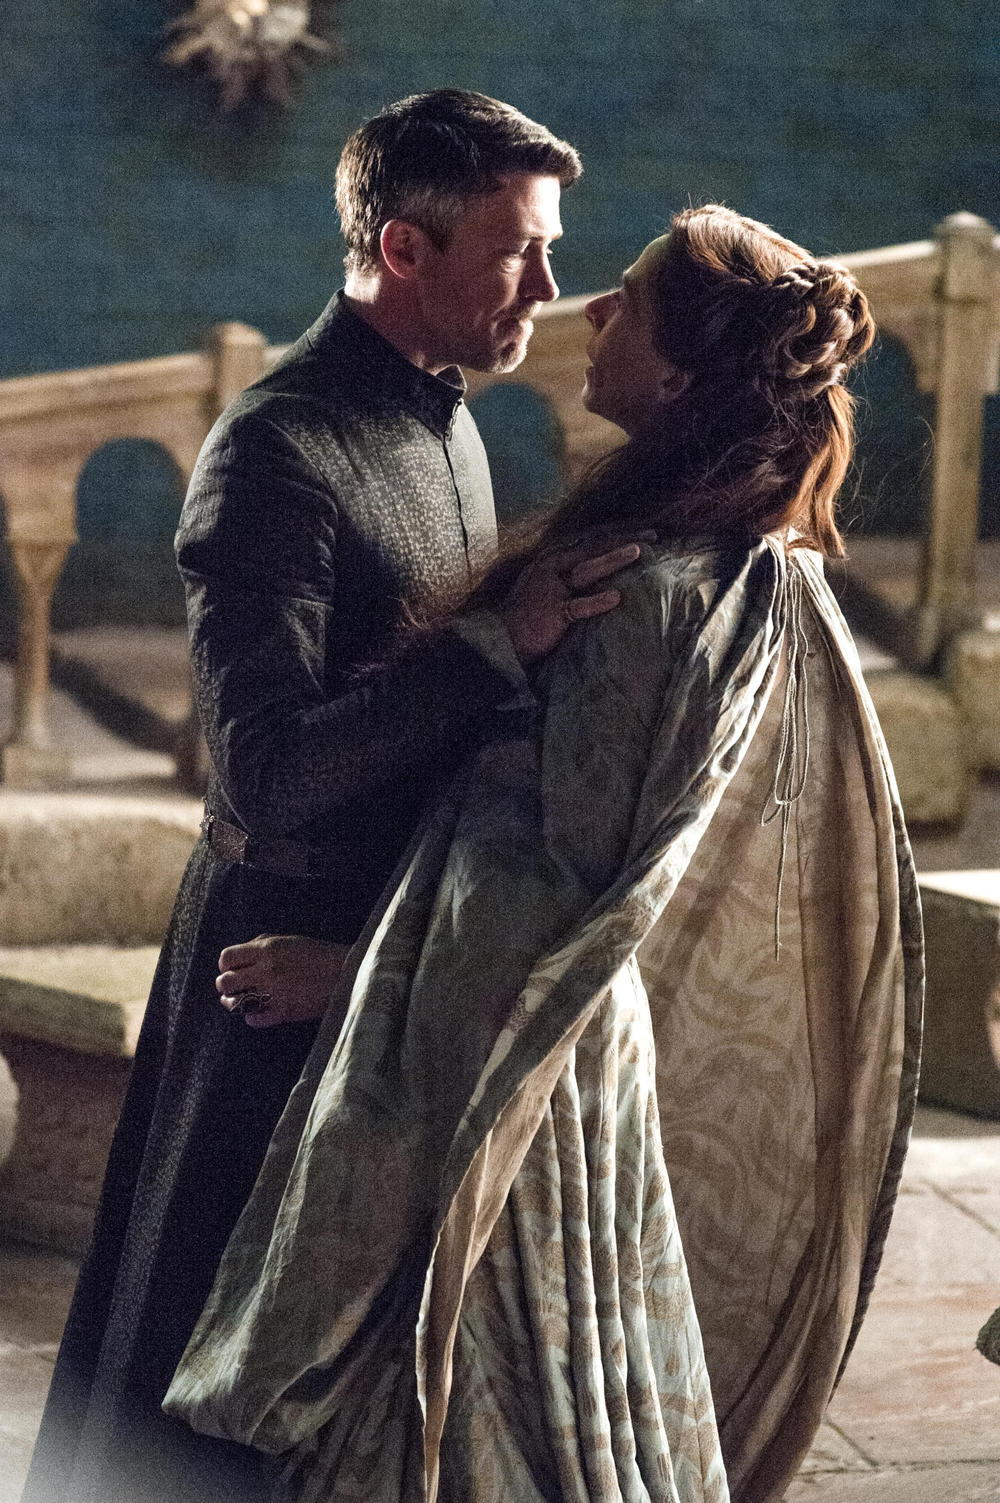 What Motivates Littlefinger on Game of Thrones? Actor Explains